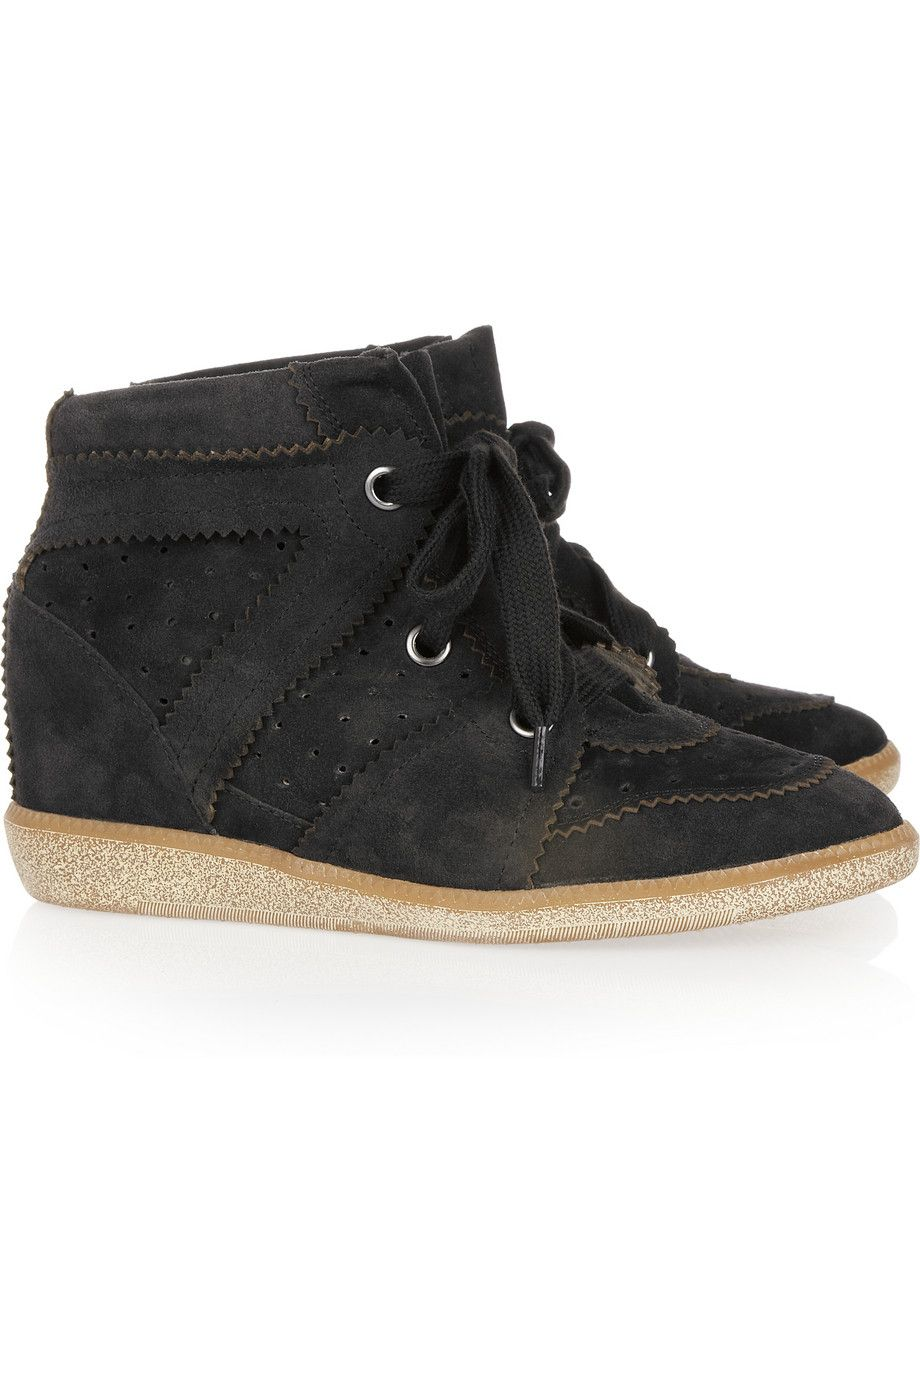 Bobby suede sneakers | Isabel Marant